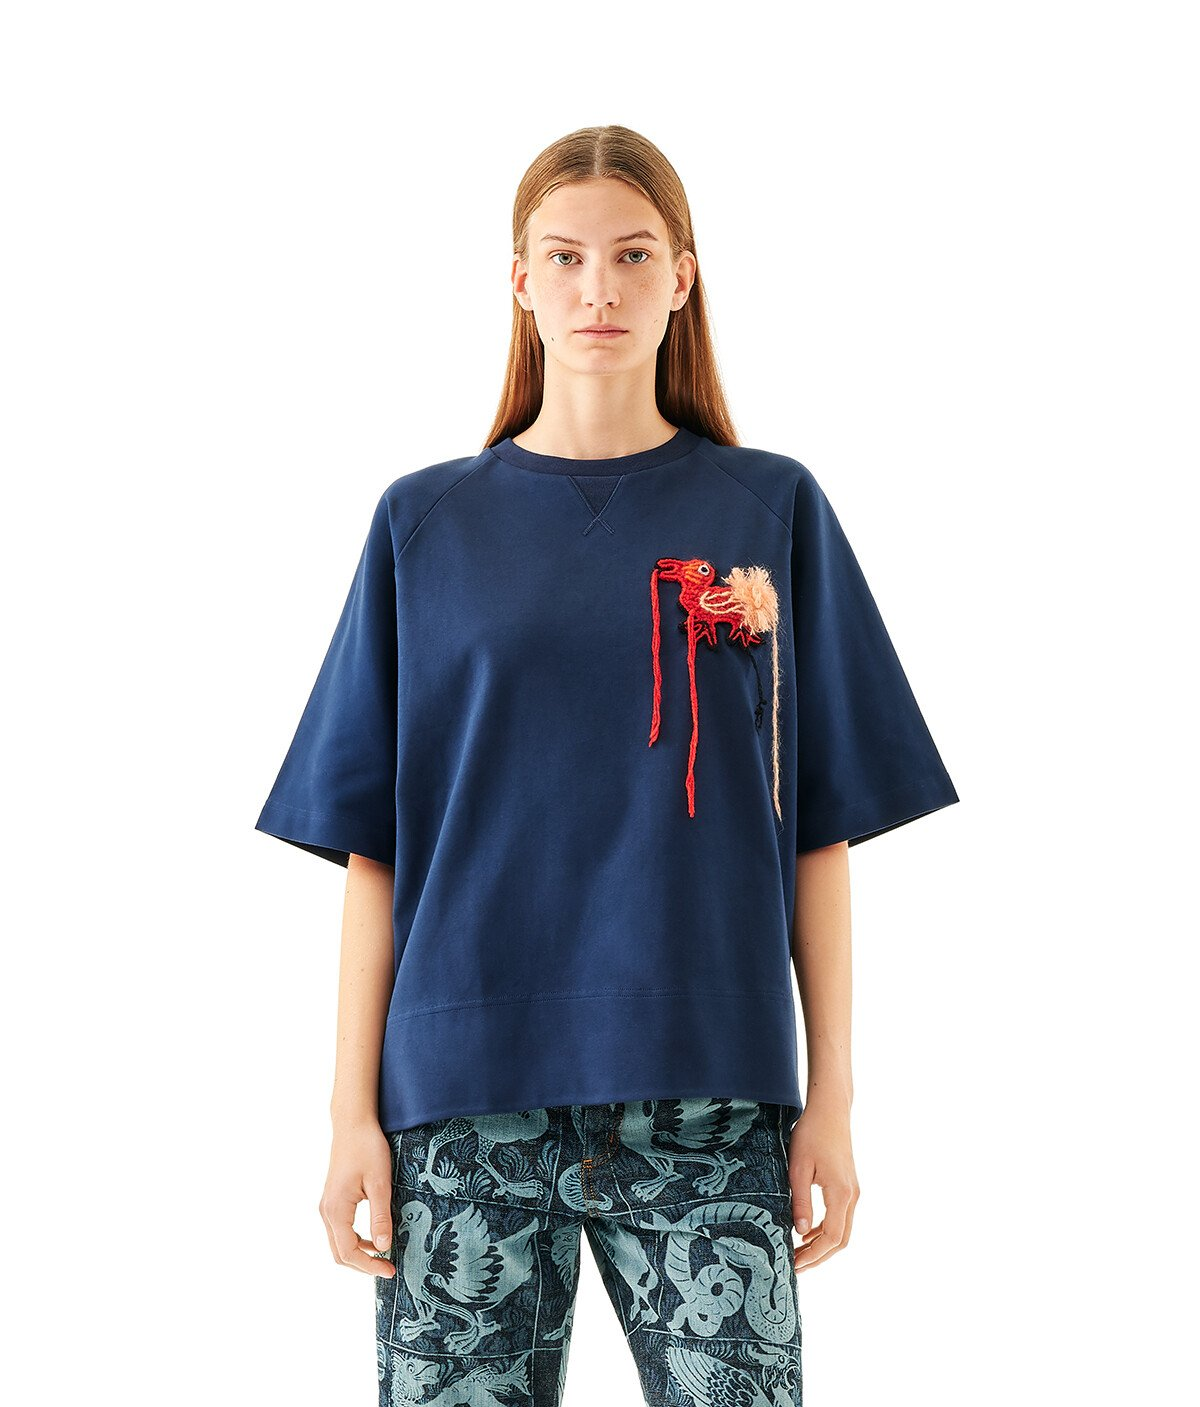 LOEWE Embroidered T-Shirt Dodo Navy Blue front